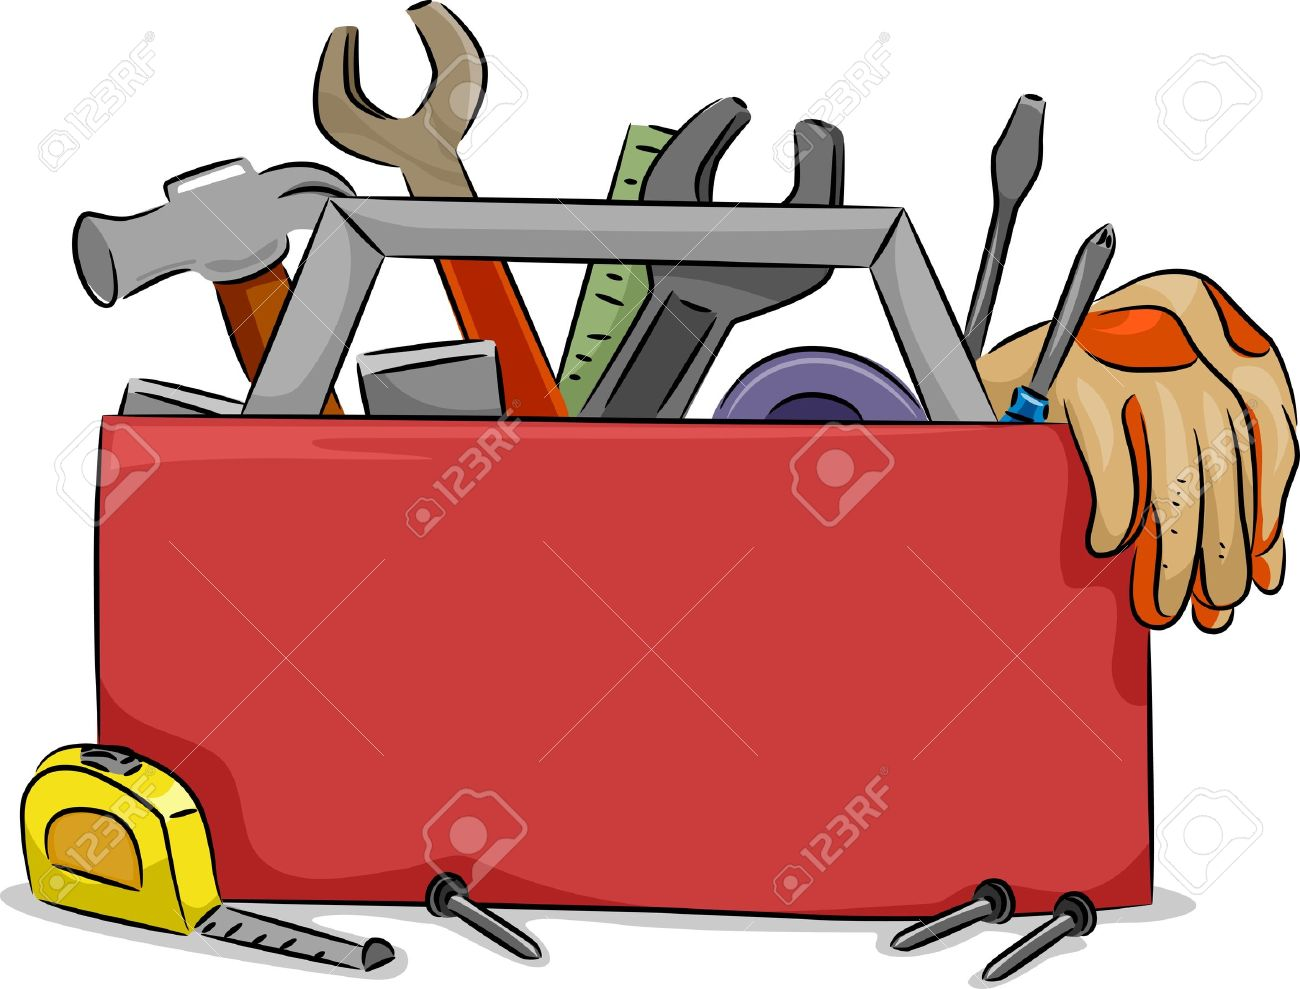 blank board illustration of red tool box with carpentry tools stock